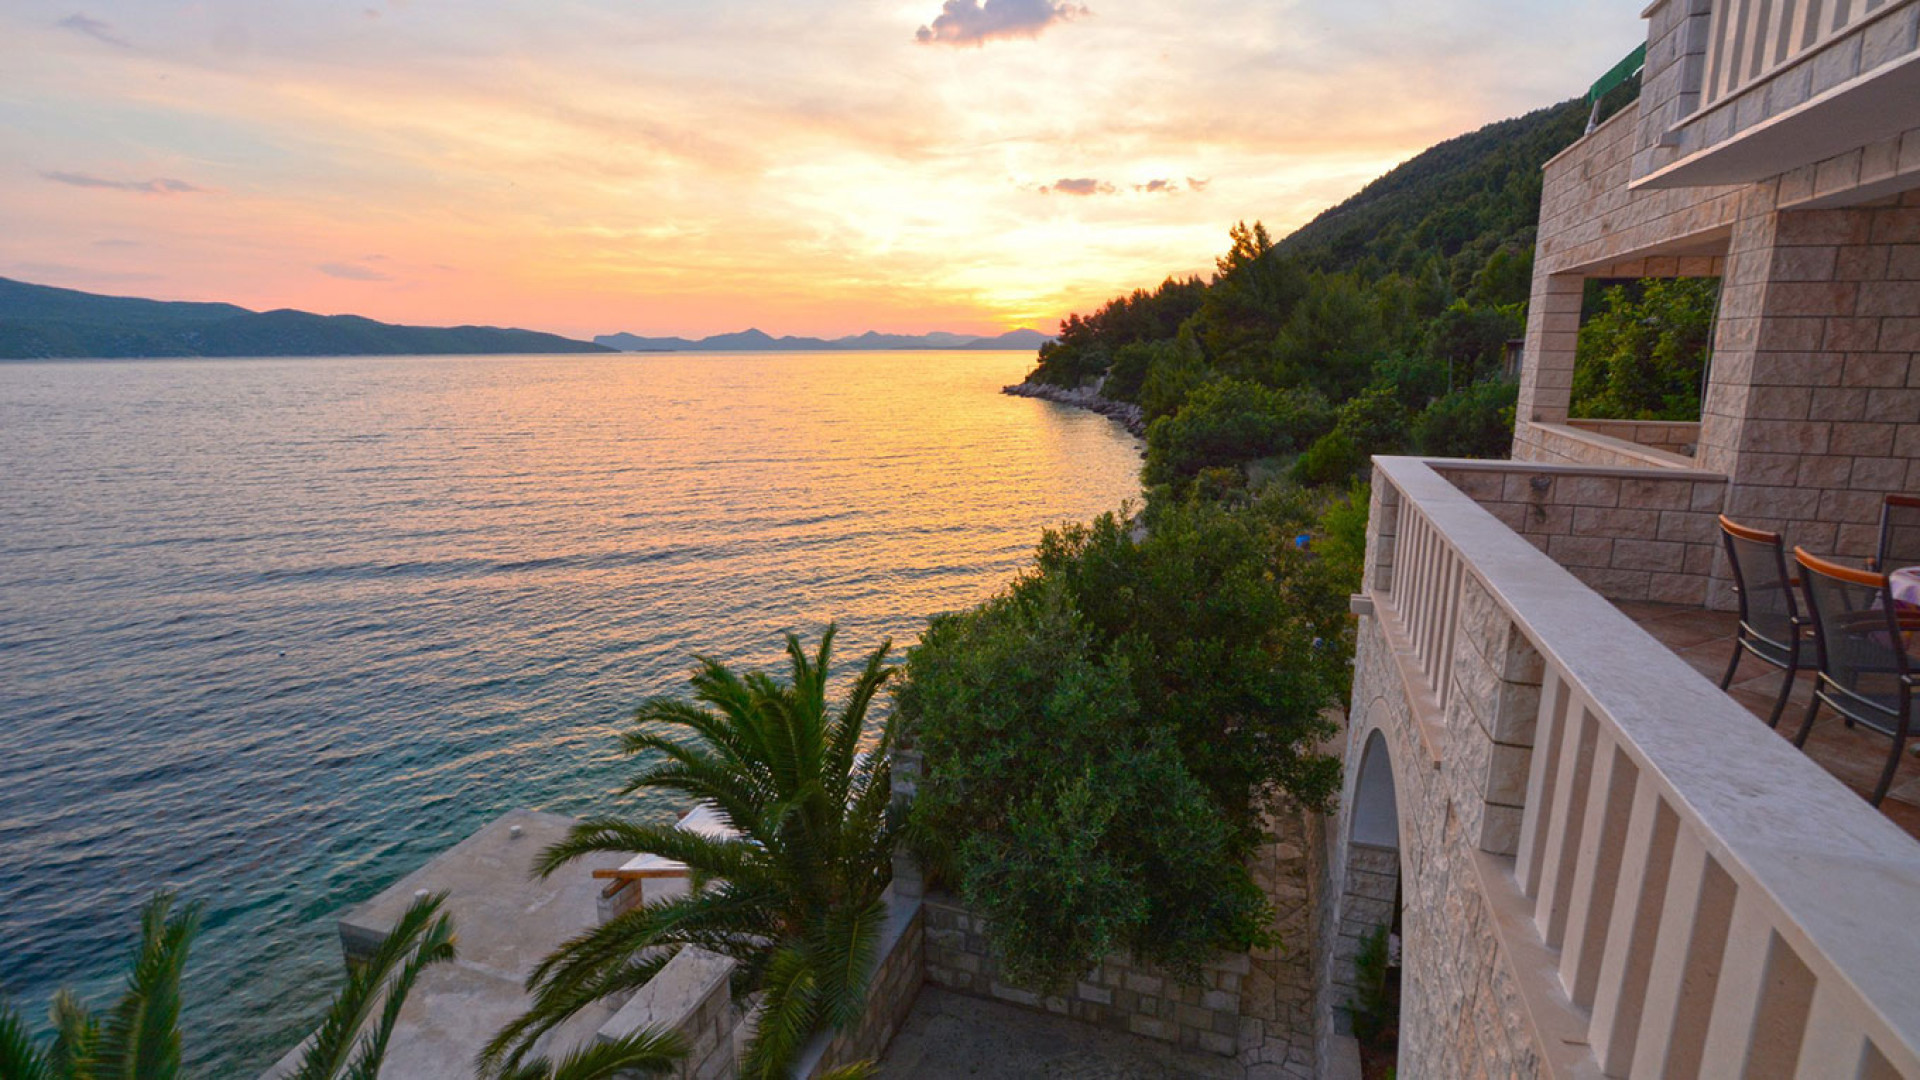 Spectacular beach-front Villa Ratac commands amazing views of Elafiti islands and Pelješac peninsula from its elevated position on Dubrovnik Riviera. Villa Ratac radiates an exclusive atmosphere and offers guests an indulgent stay.